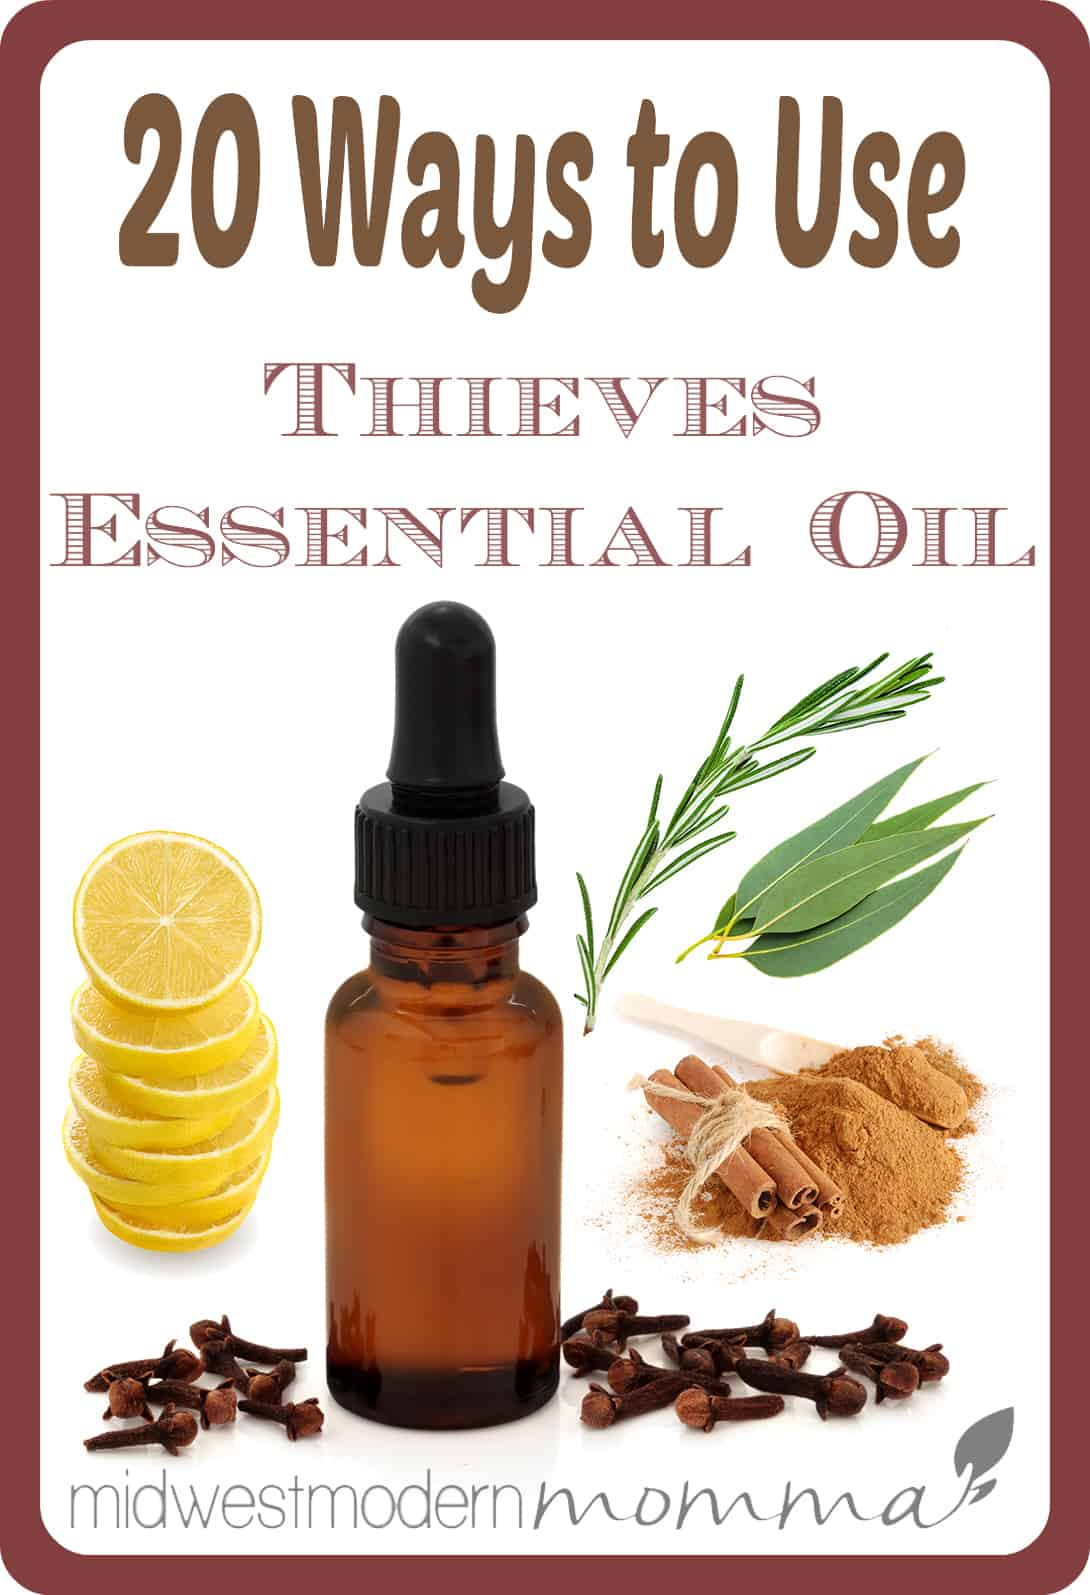 20 Ways to Use Thieves Essential Oil